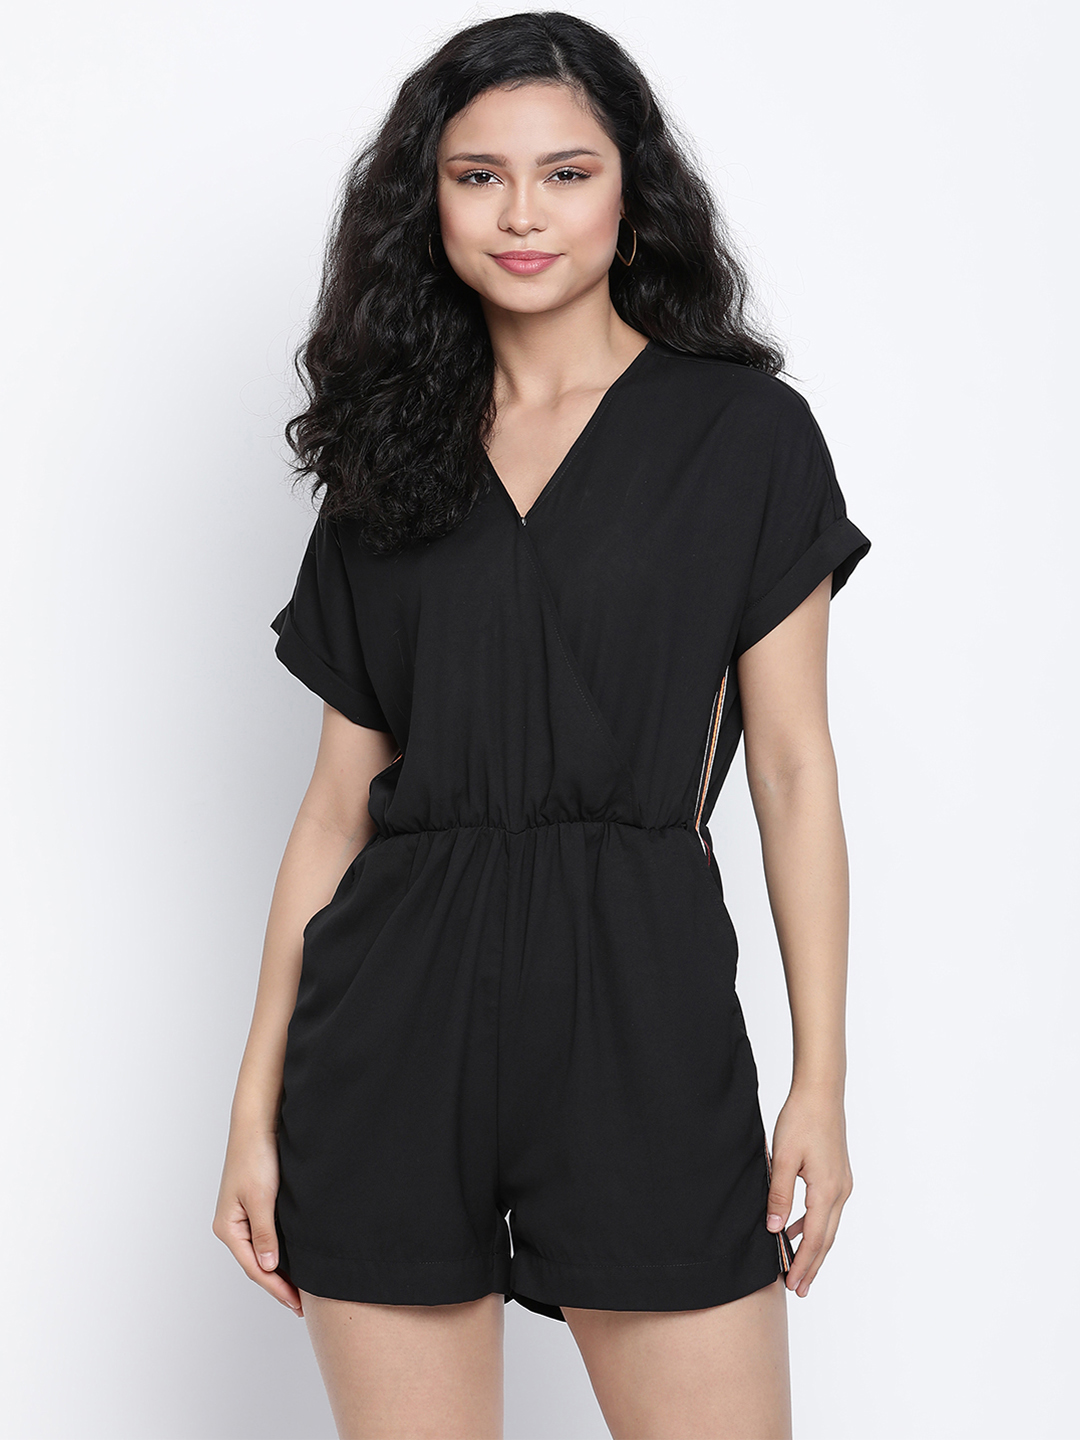 DRAAX fashions | DRAAX FASHIONS Women Black embellished Fit and Flare Jumpsuit